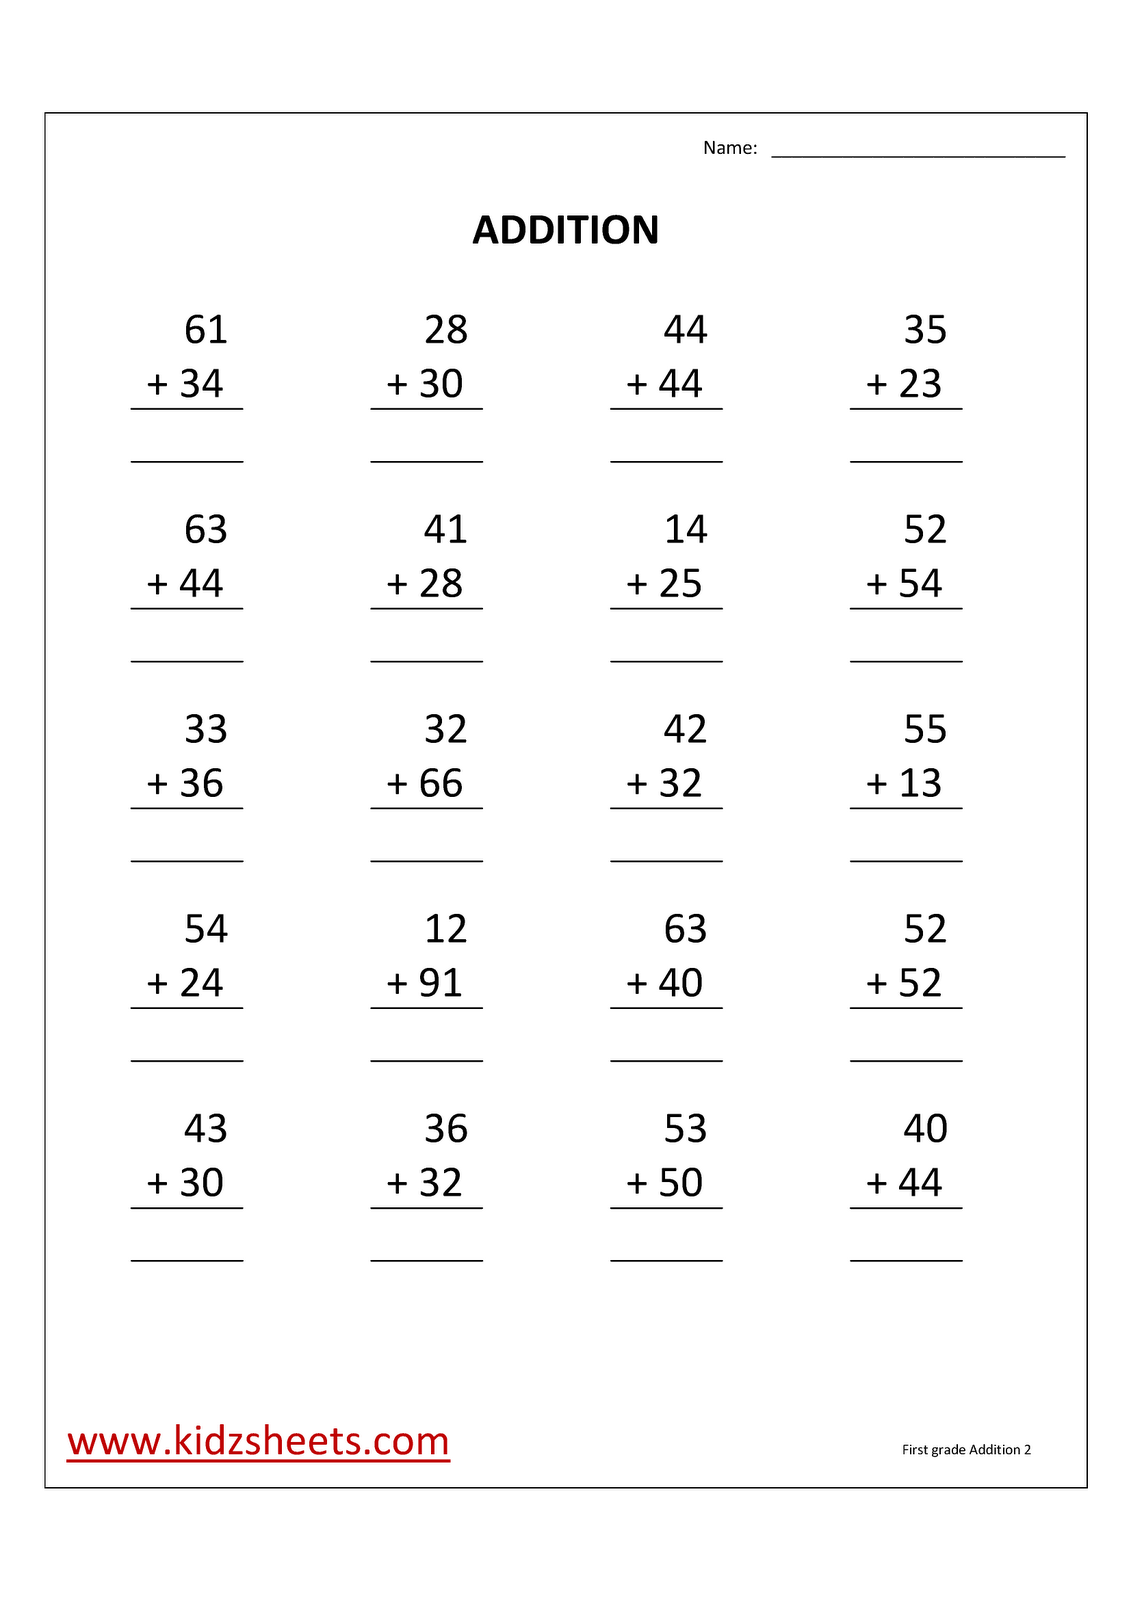 Math Worksheets For 1St Grade Addition And Subtraction – Math Addition Worksheets for 1st Grade